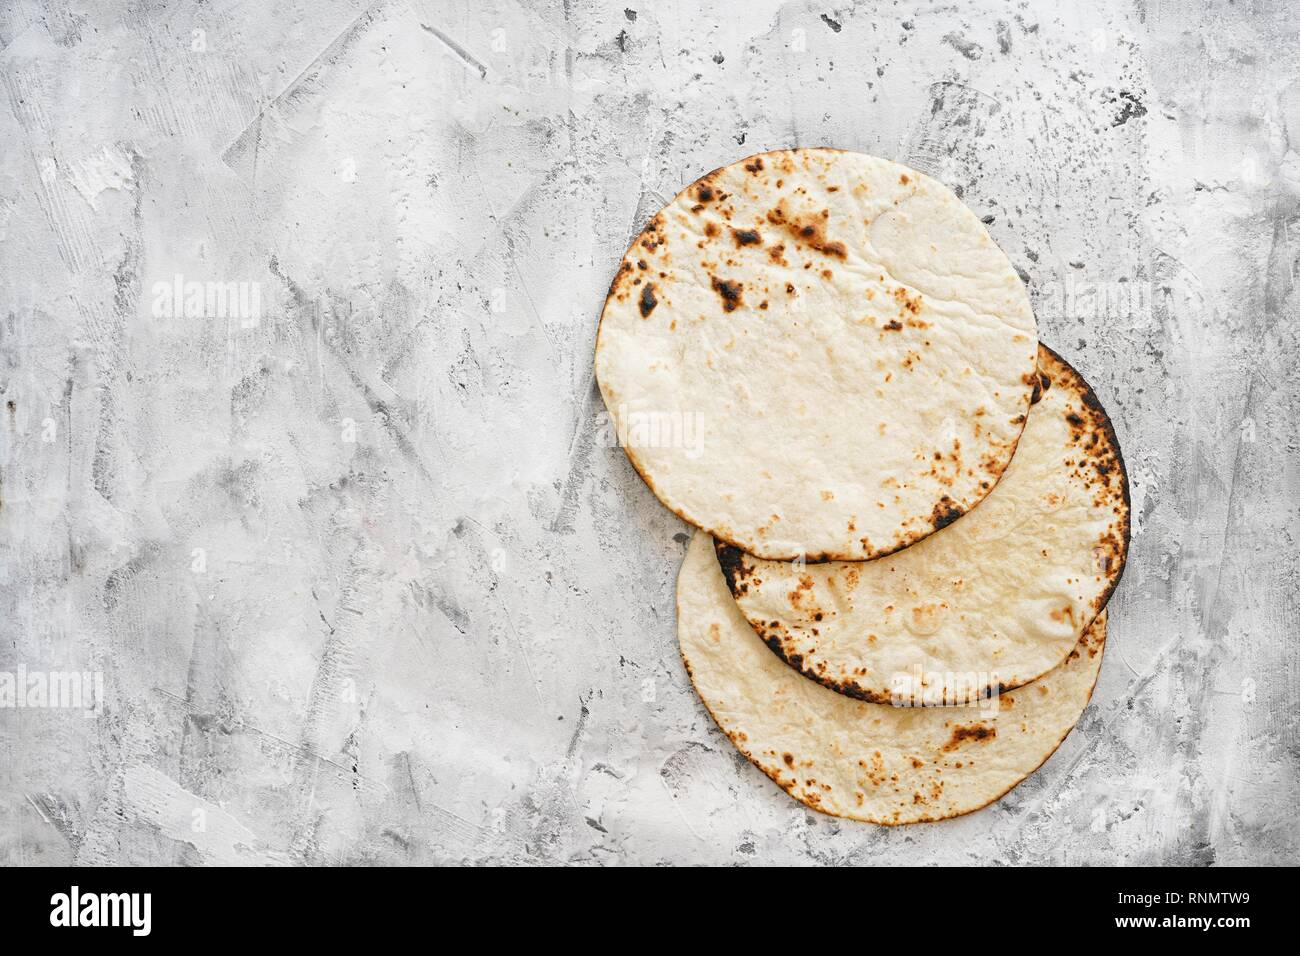 Plain grilled soft tacos top view - Stock Image